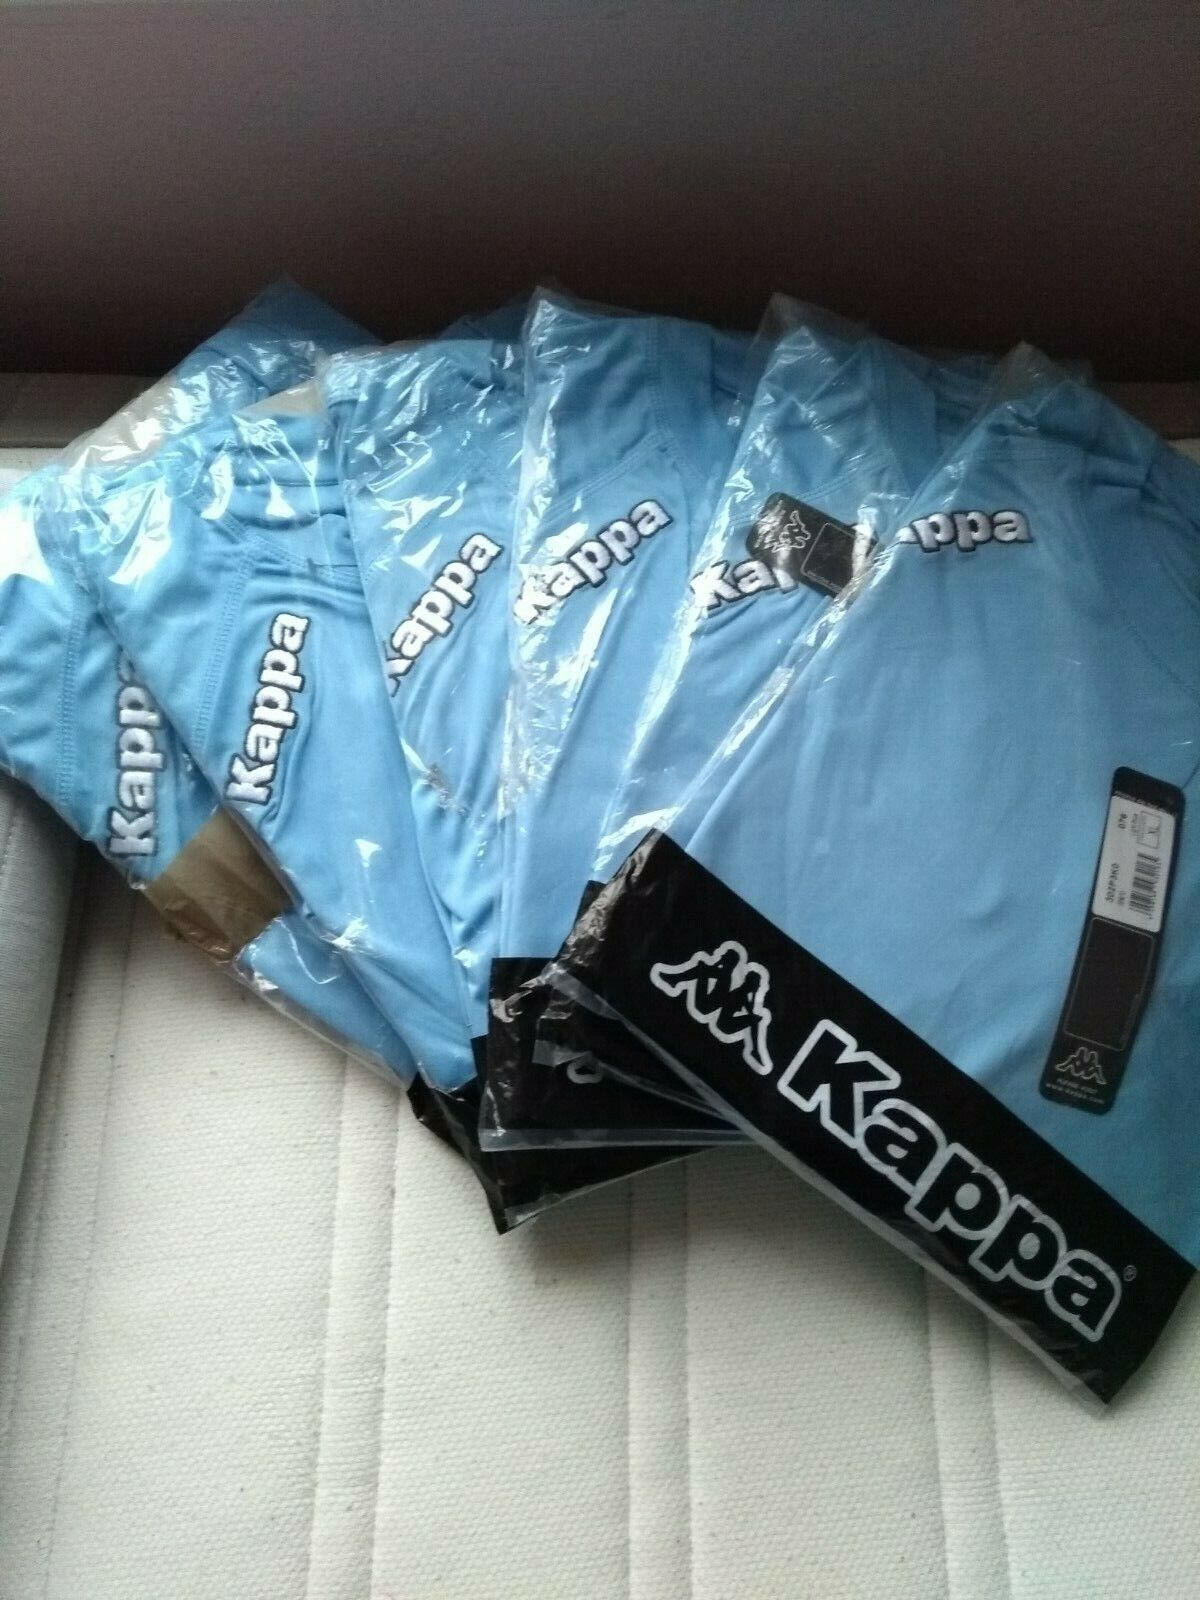 Kappa BRAND NEW XL shirts ideal for a 5-a-side team